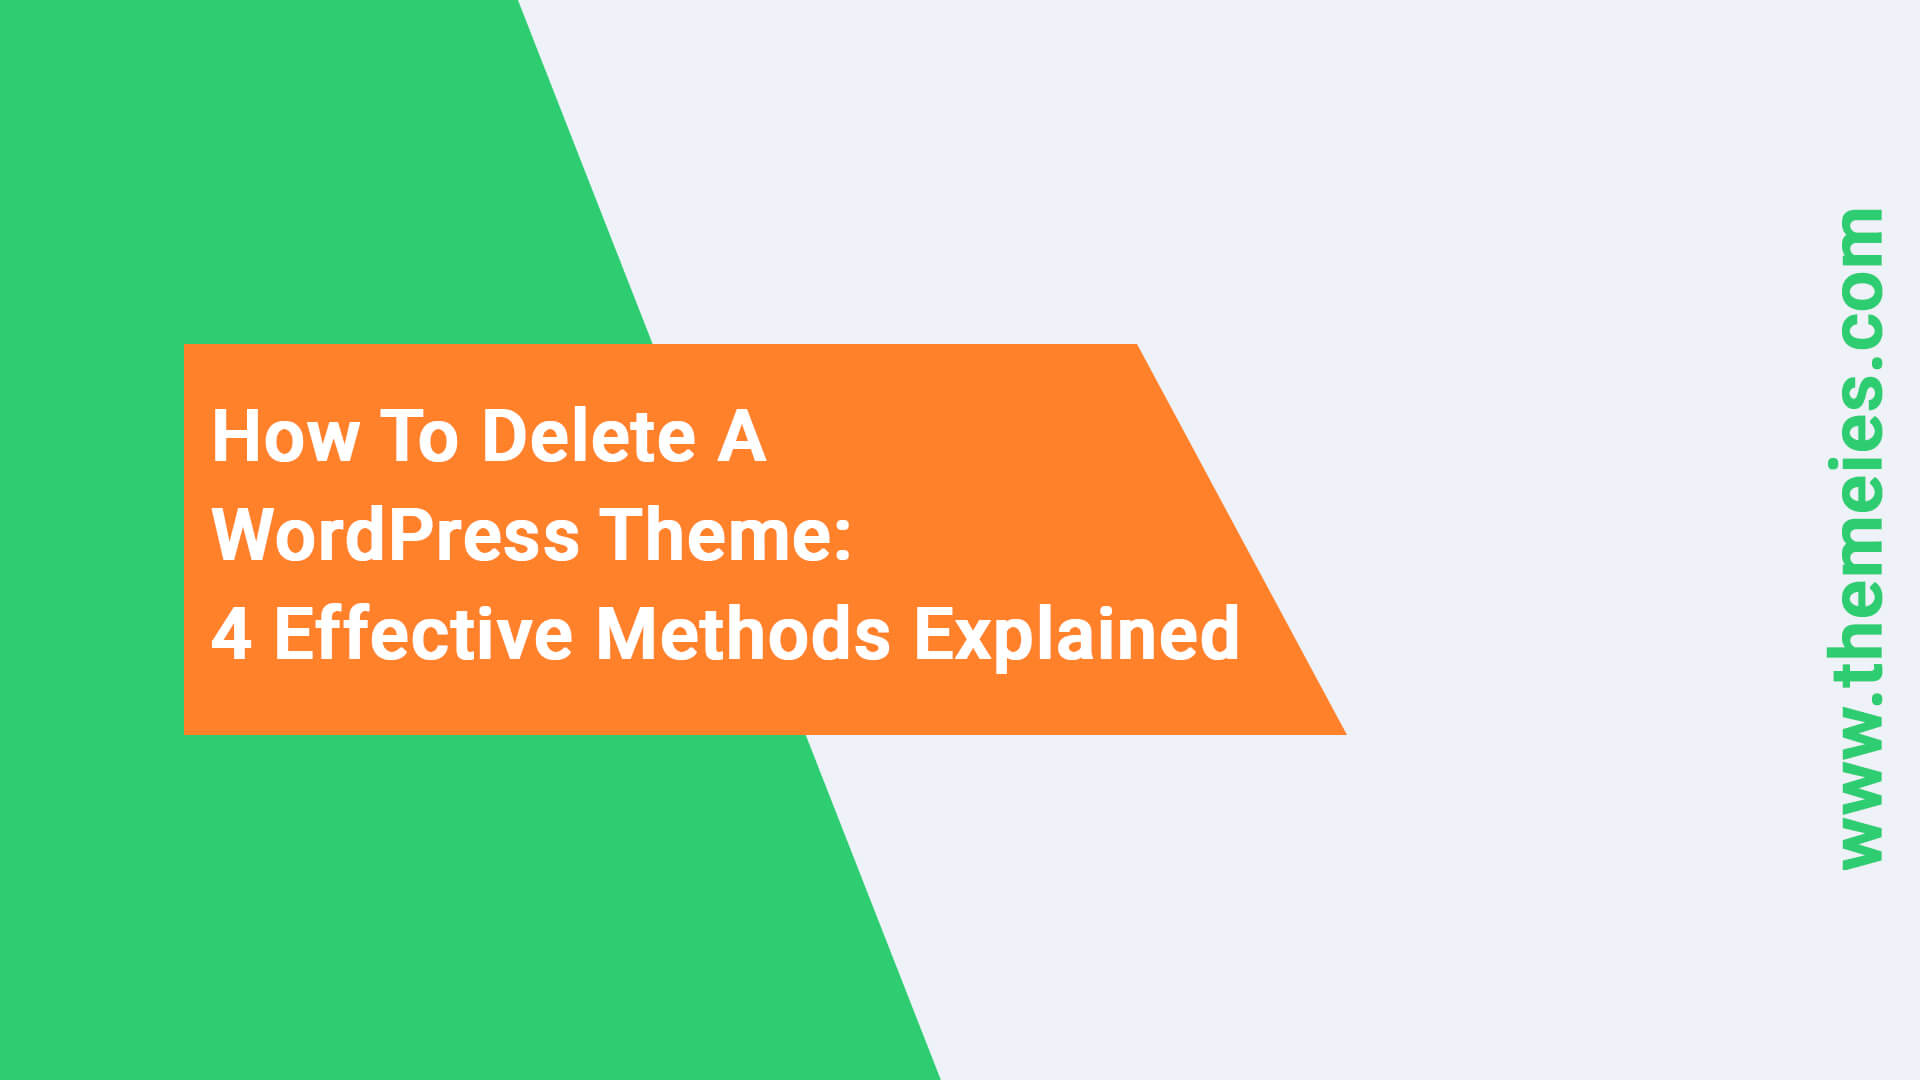 How-To-Delete-A-WordPress-Theme-4-Effective-Methods-Explained